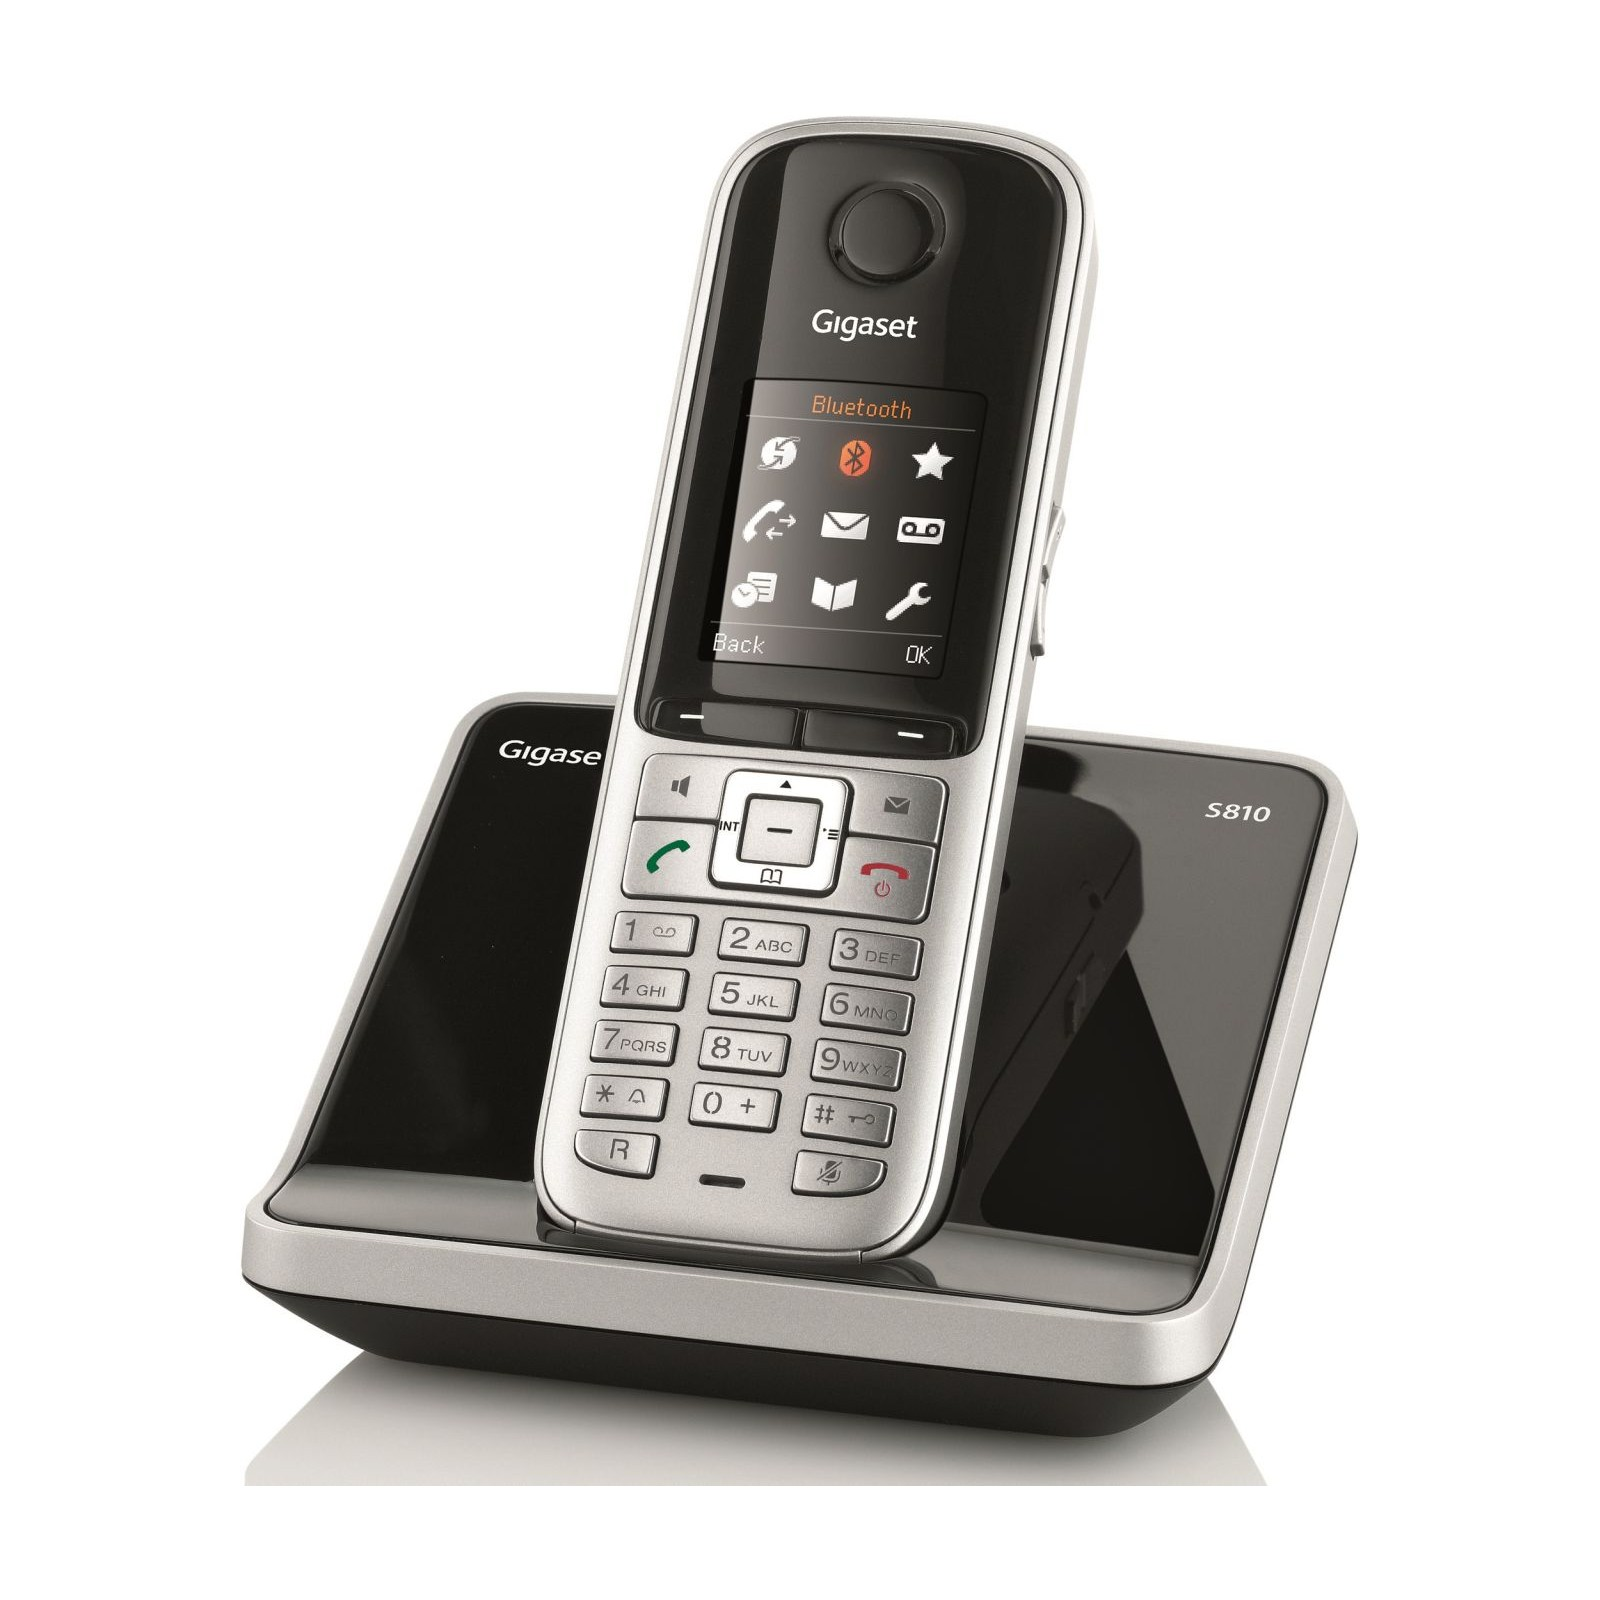 siemens gigaset s810 cordless phone without answering. Black Bedroom Furniture Sets. Home Design Ideas